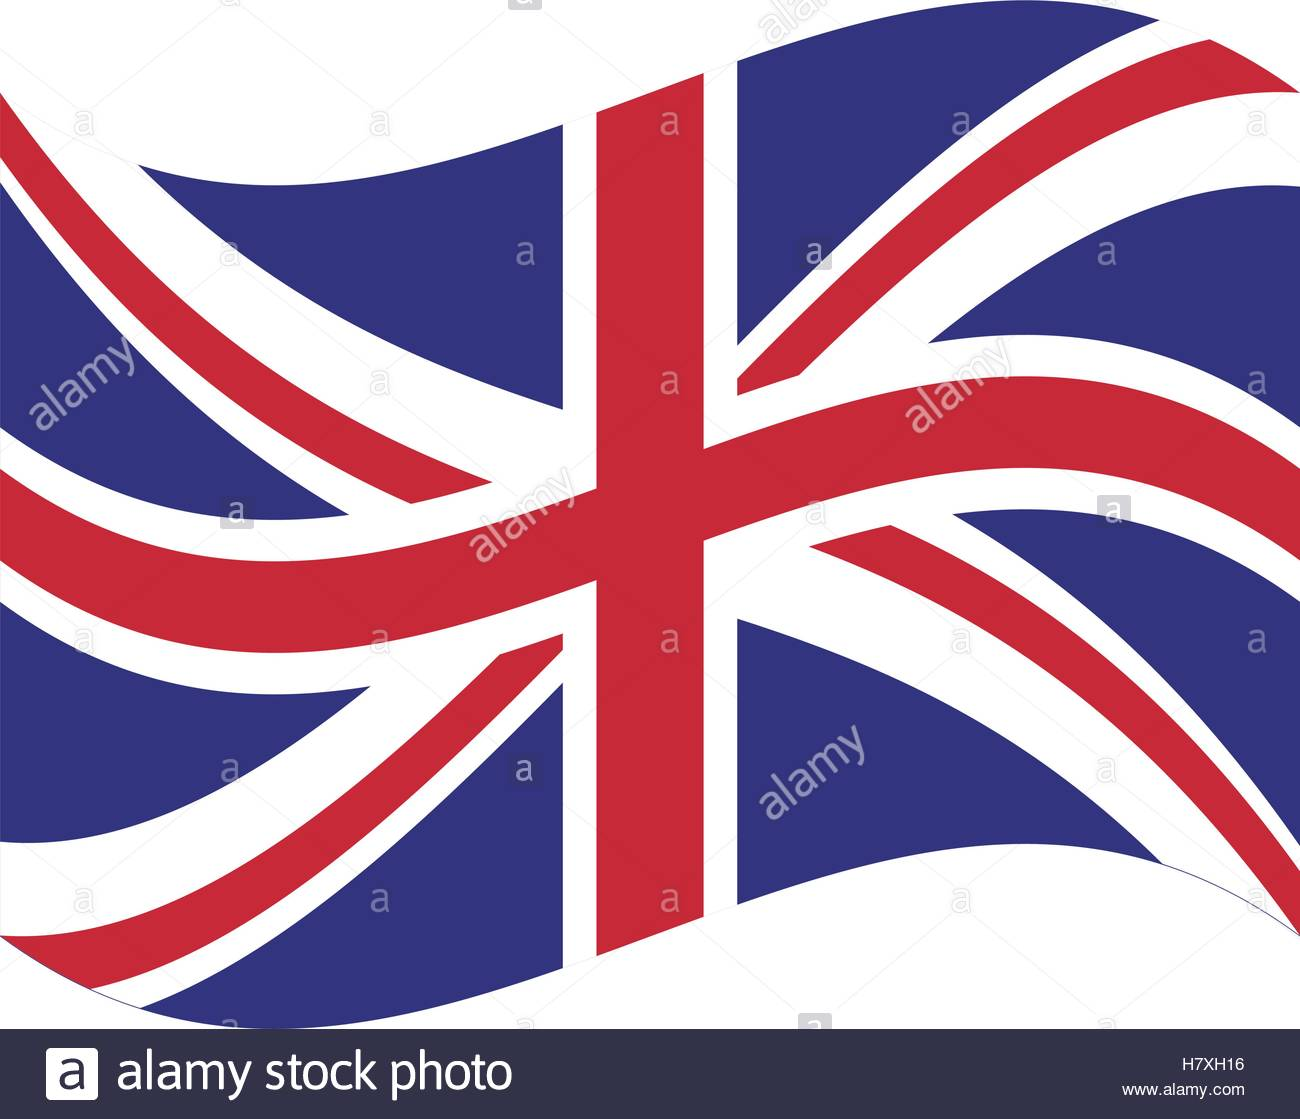 Clipart england clipart library England Flag Clipart | Free download best England Flag Clipart on ... clipart library